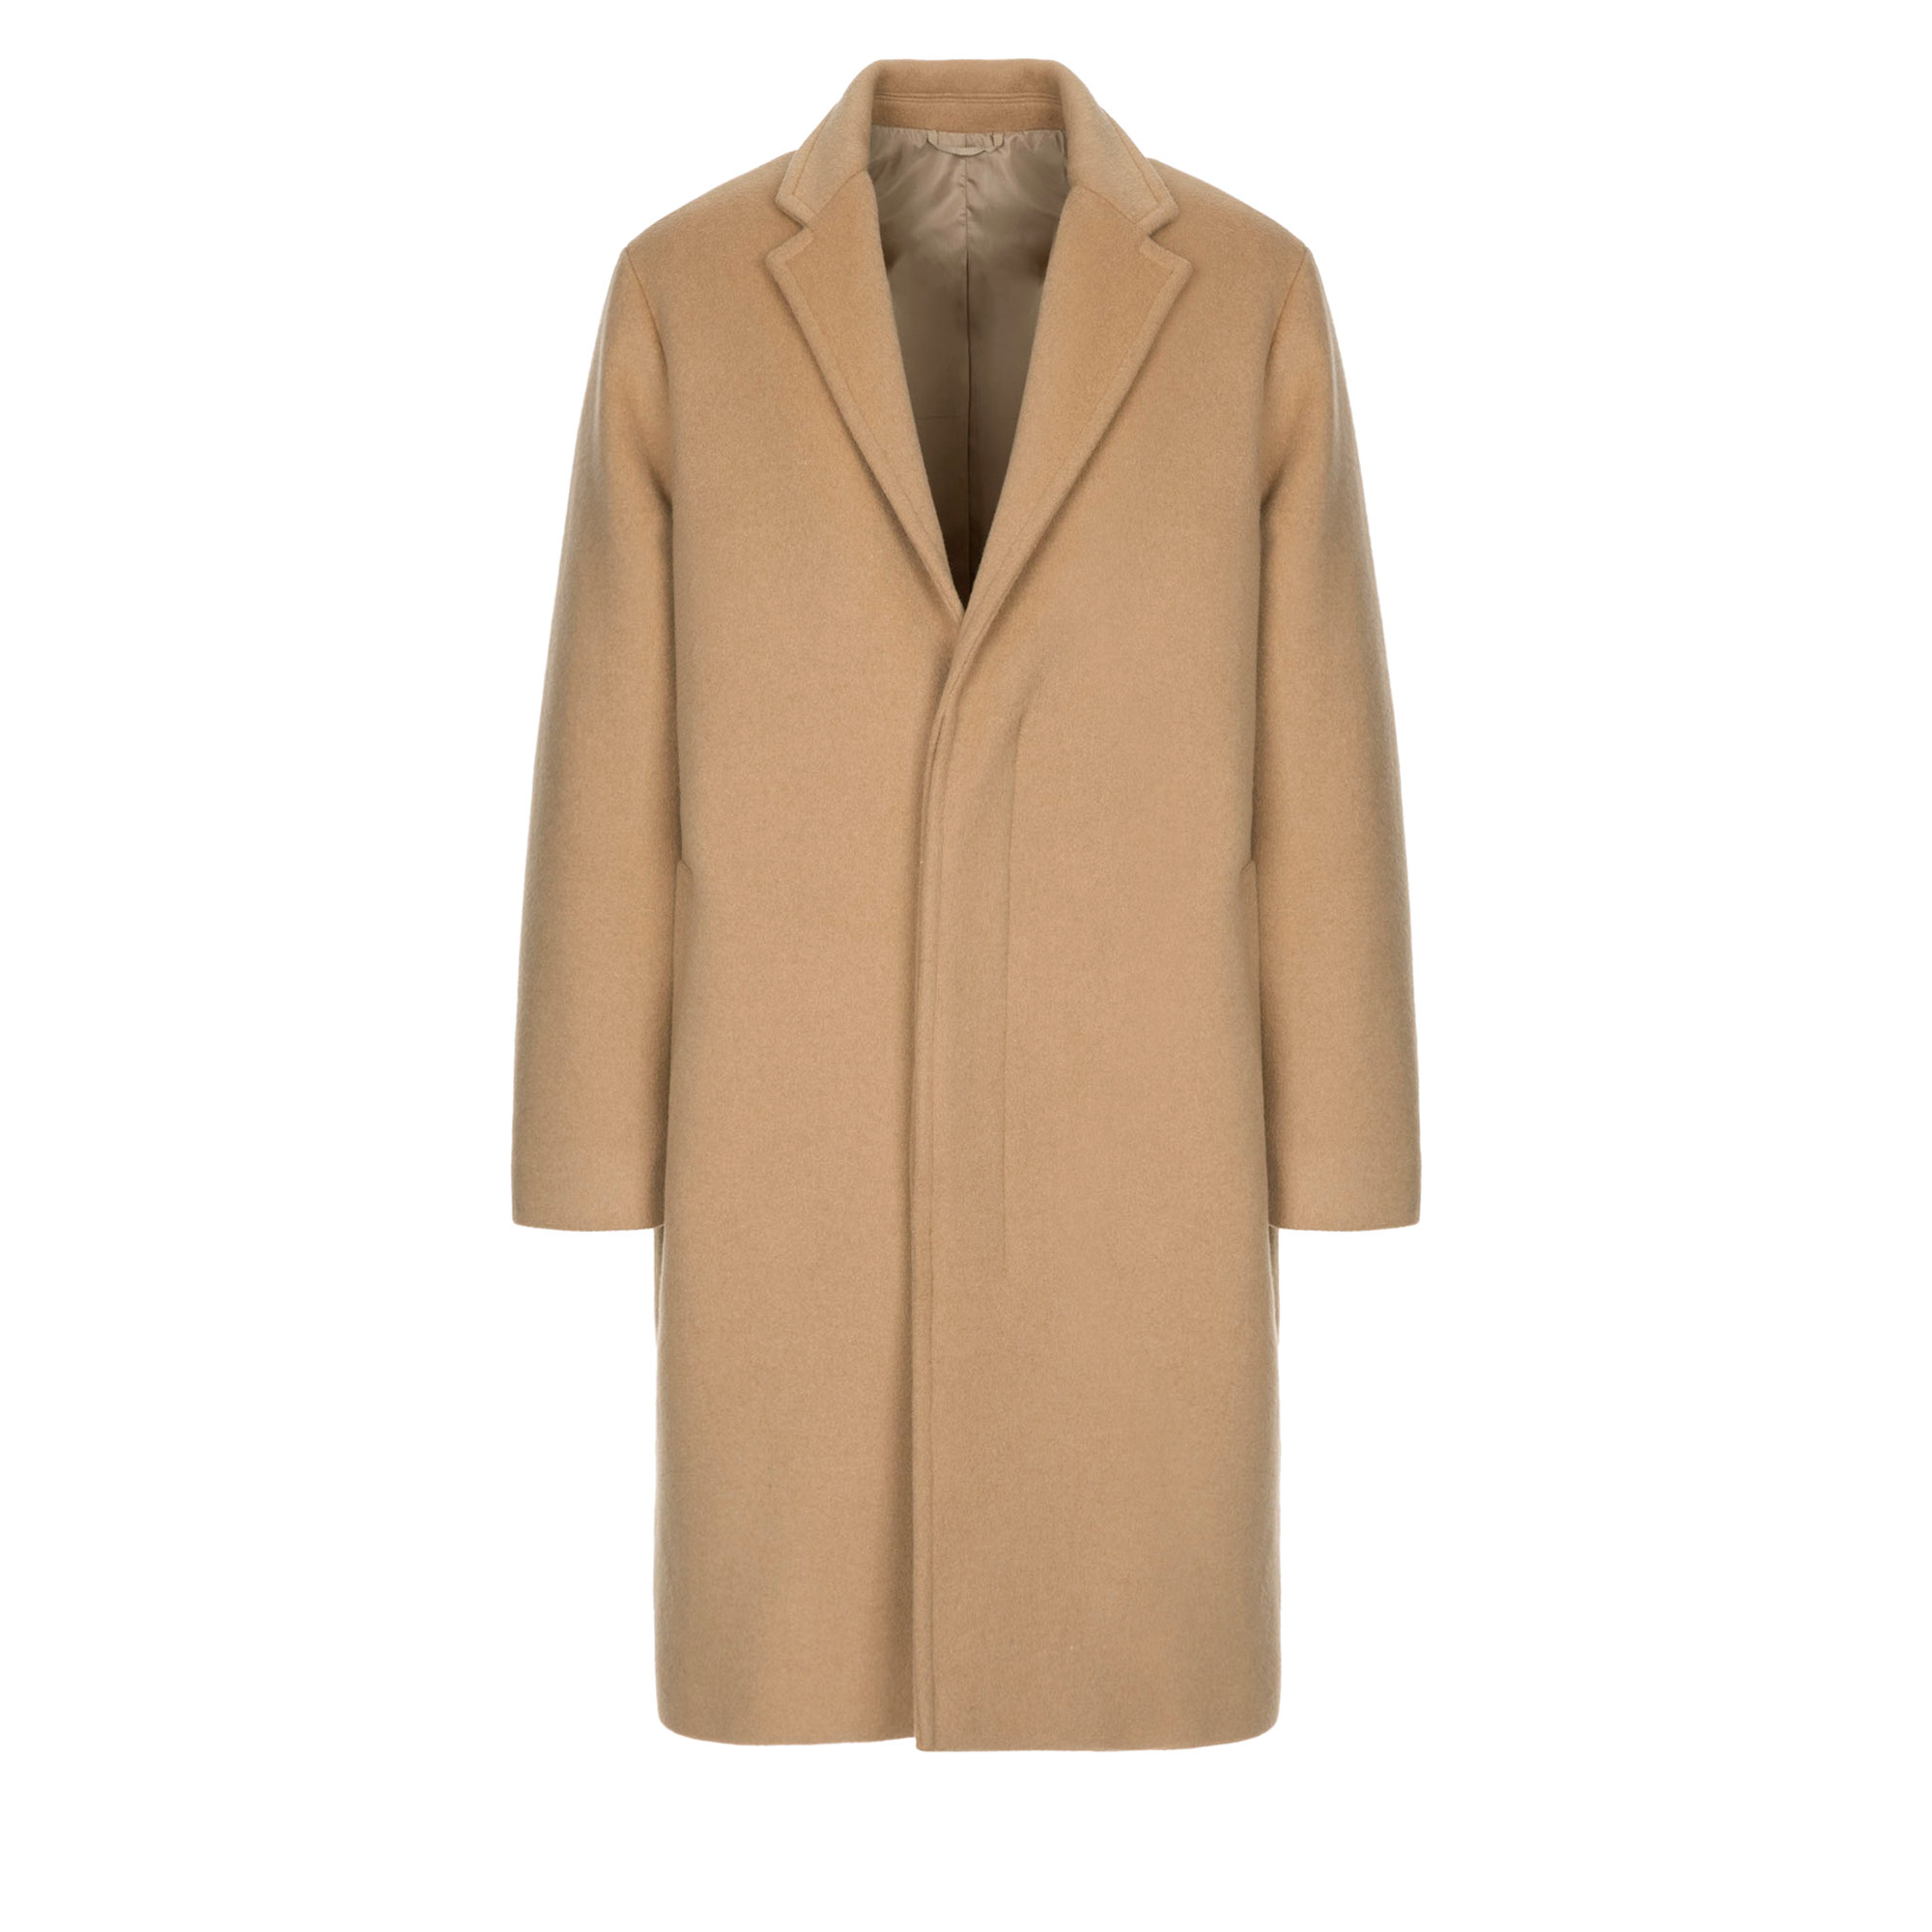 wool single coat / beige